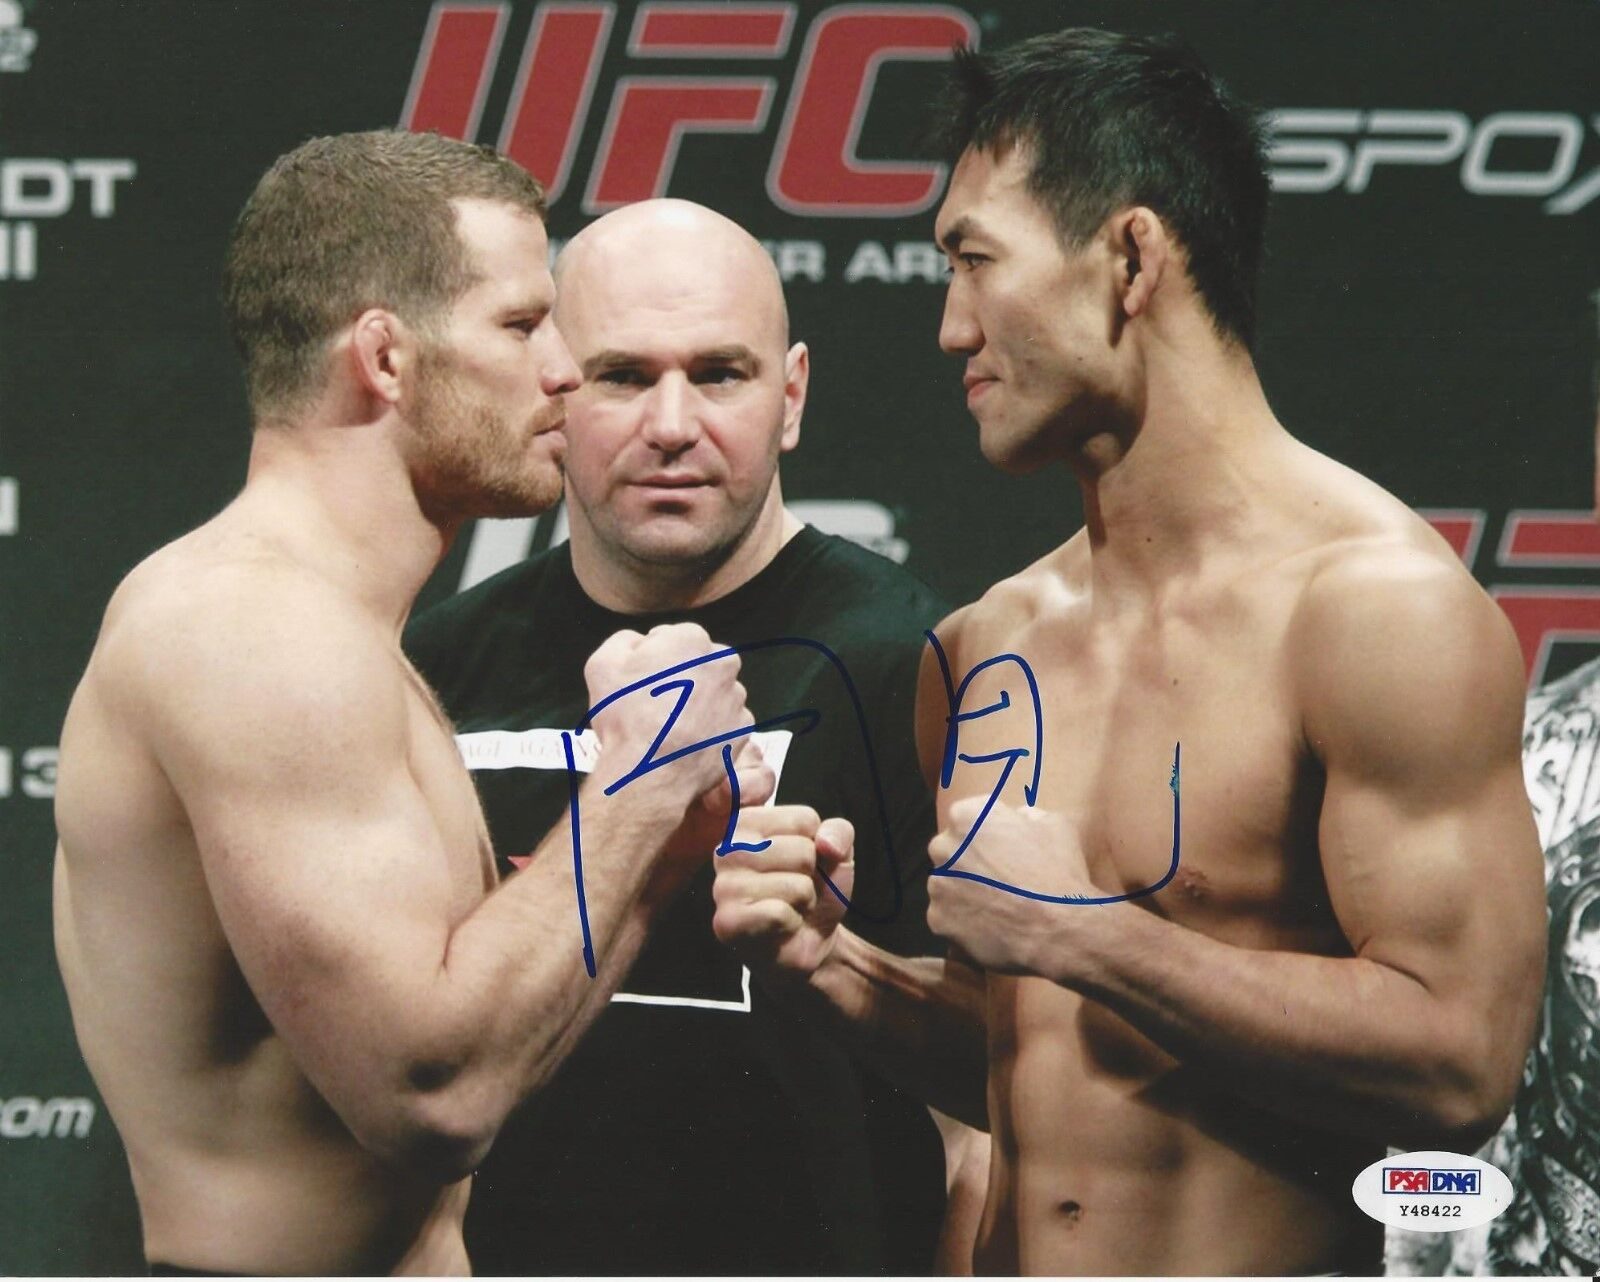 Yushin Okami UFC Fighter signed 8x10 photo PSA/DNA # Y48422